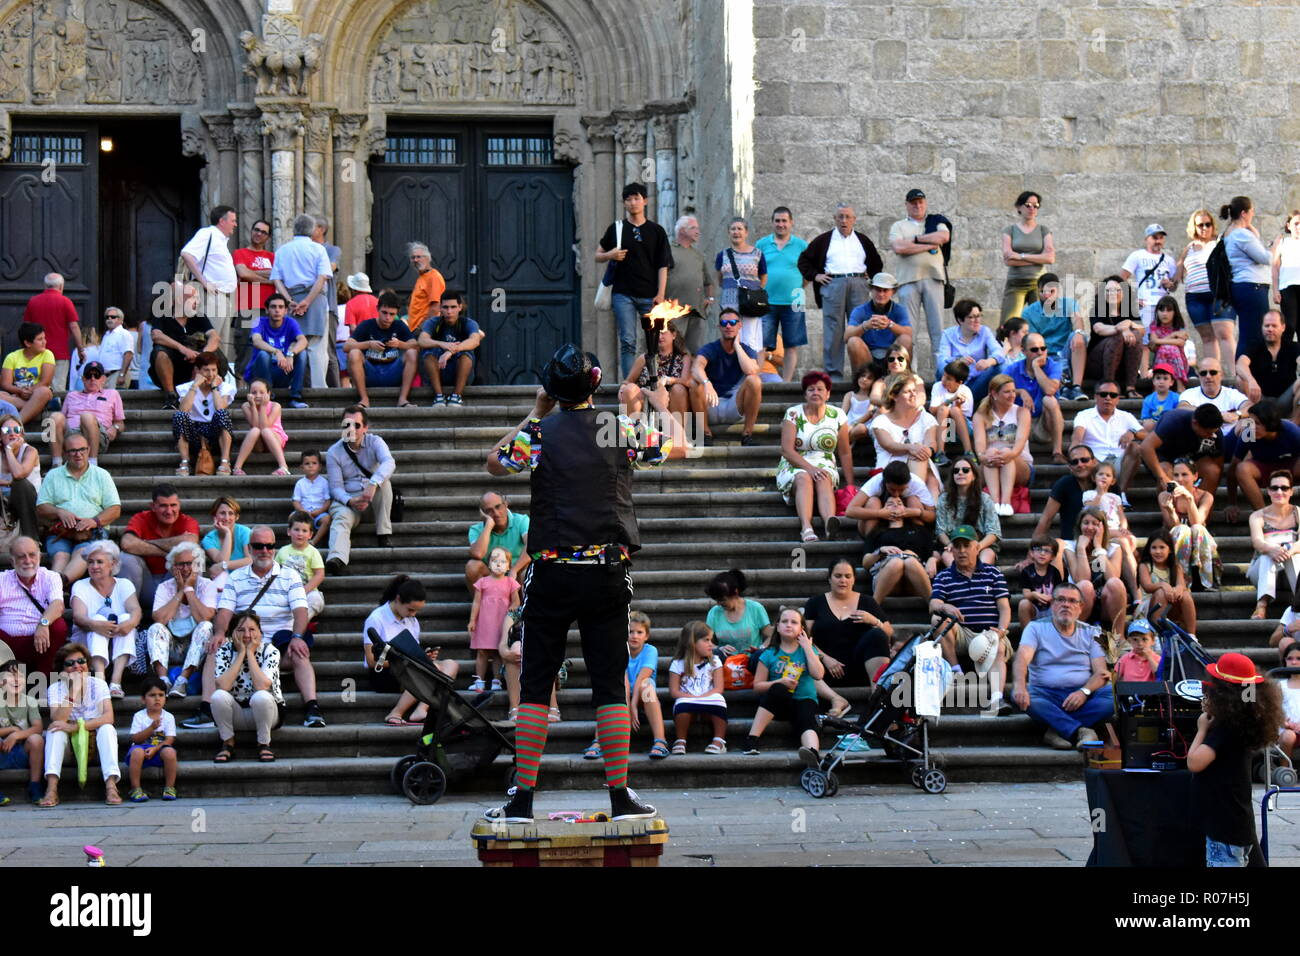 Santiago de Compostela, Spain. August 2018. A fire eater performs in front of the Cathedral. Little girl helper. Platerias Square. Stock Photo